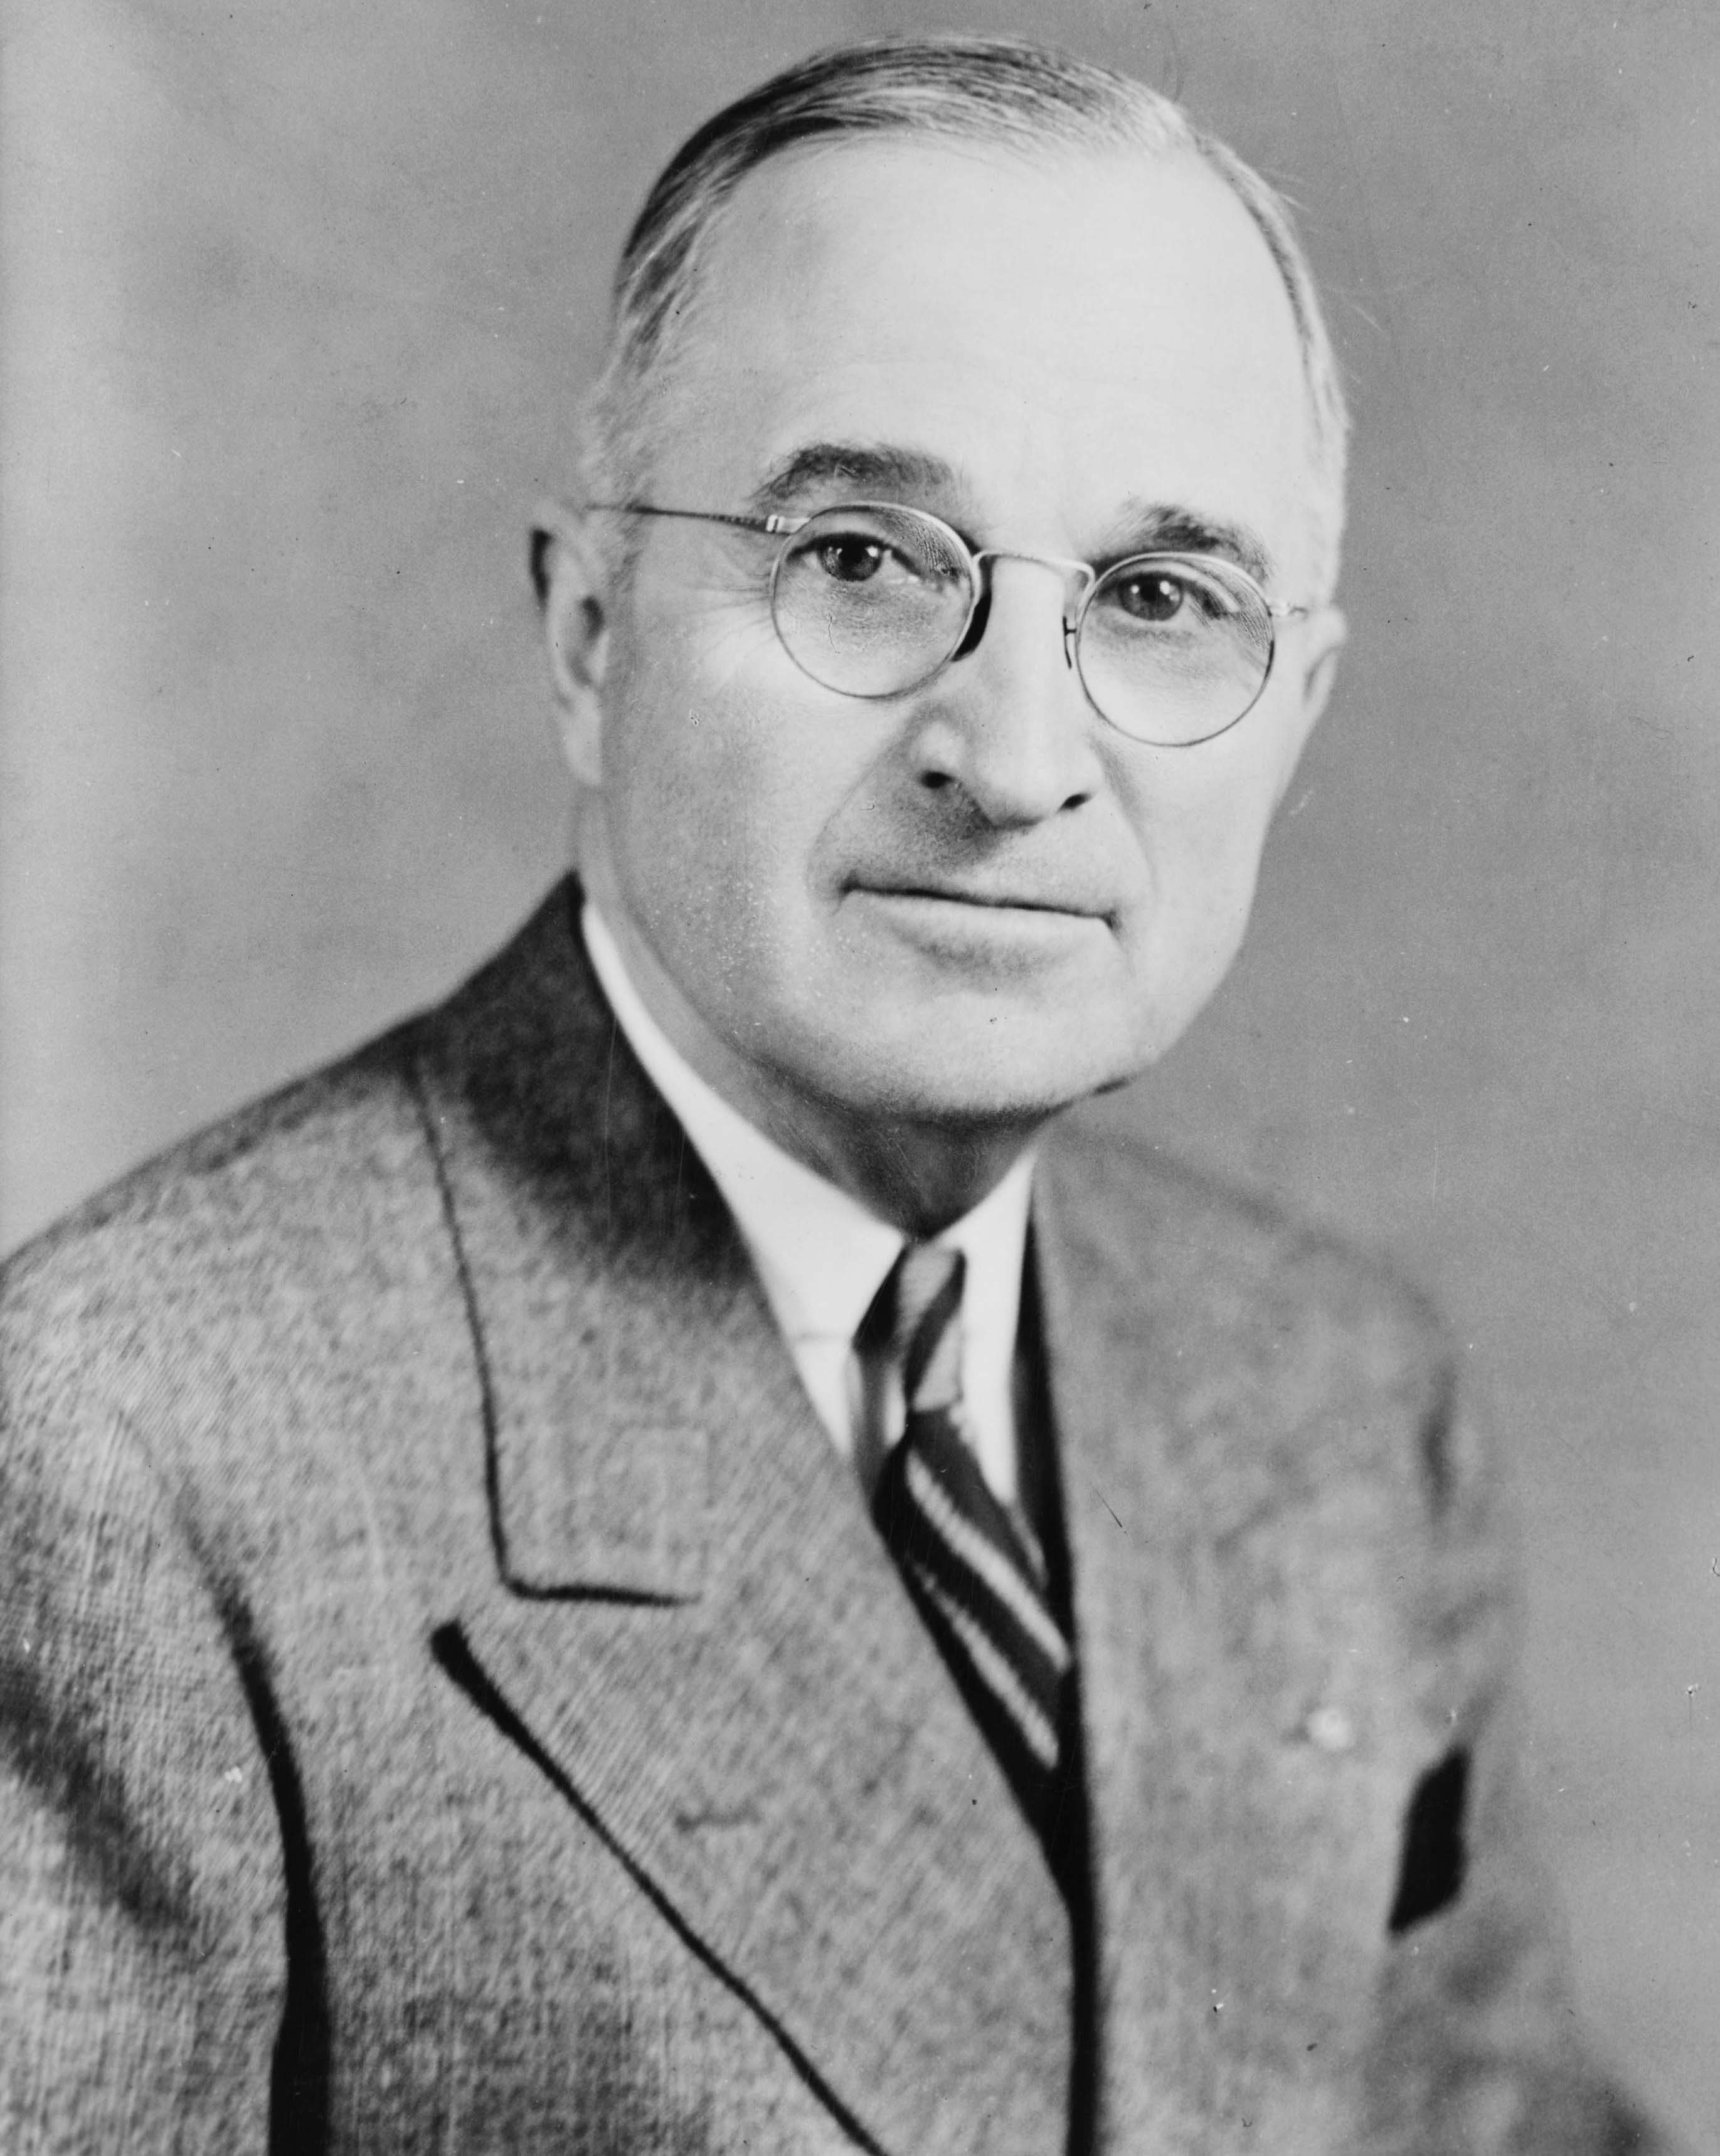 U.S. President Harry S. Truman. Photo copyrighted July 27, 1945. From the United States Library of Congress's Prints and Photographs division under the digital ID cph.3c17122.